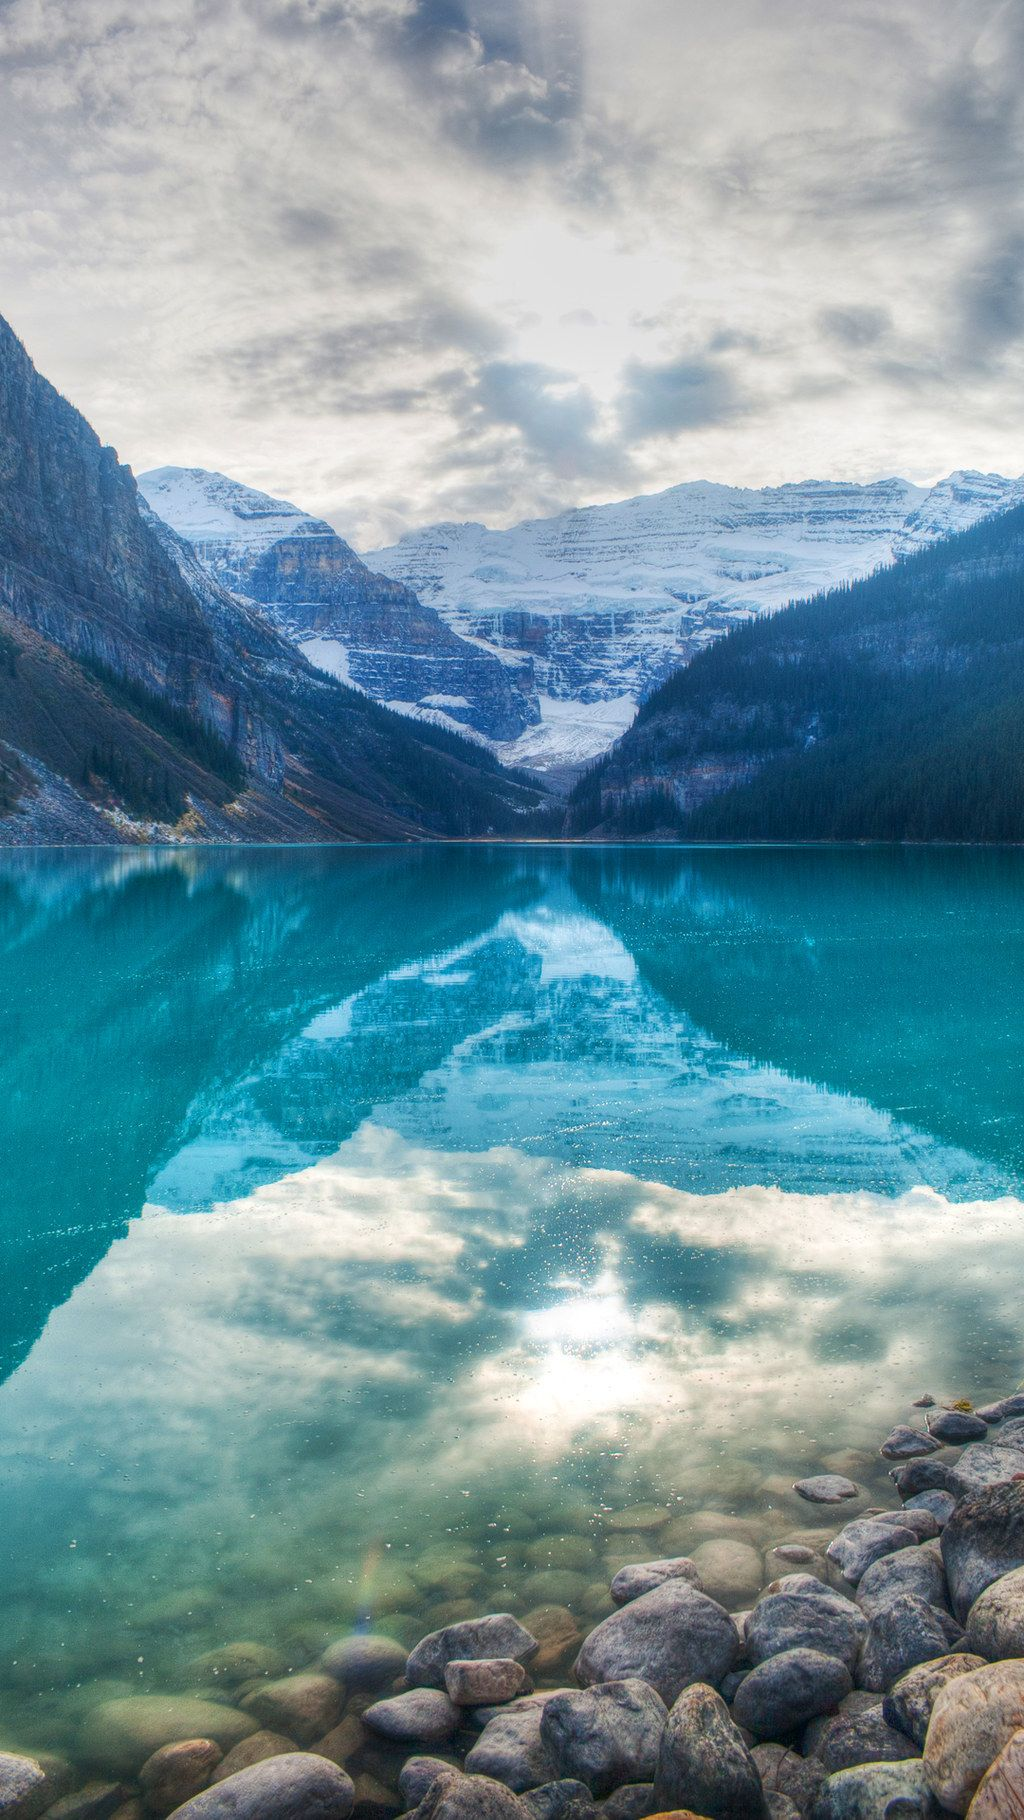 Lake Louise, Alberta in 2020 Nature iphone wallpaper